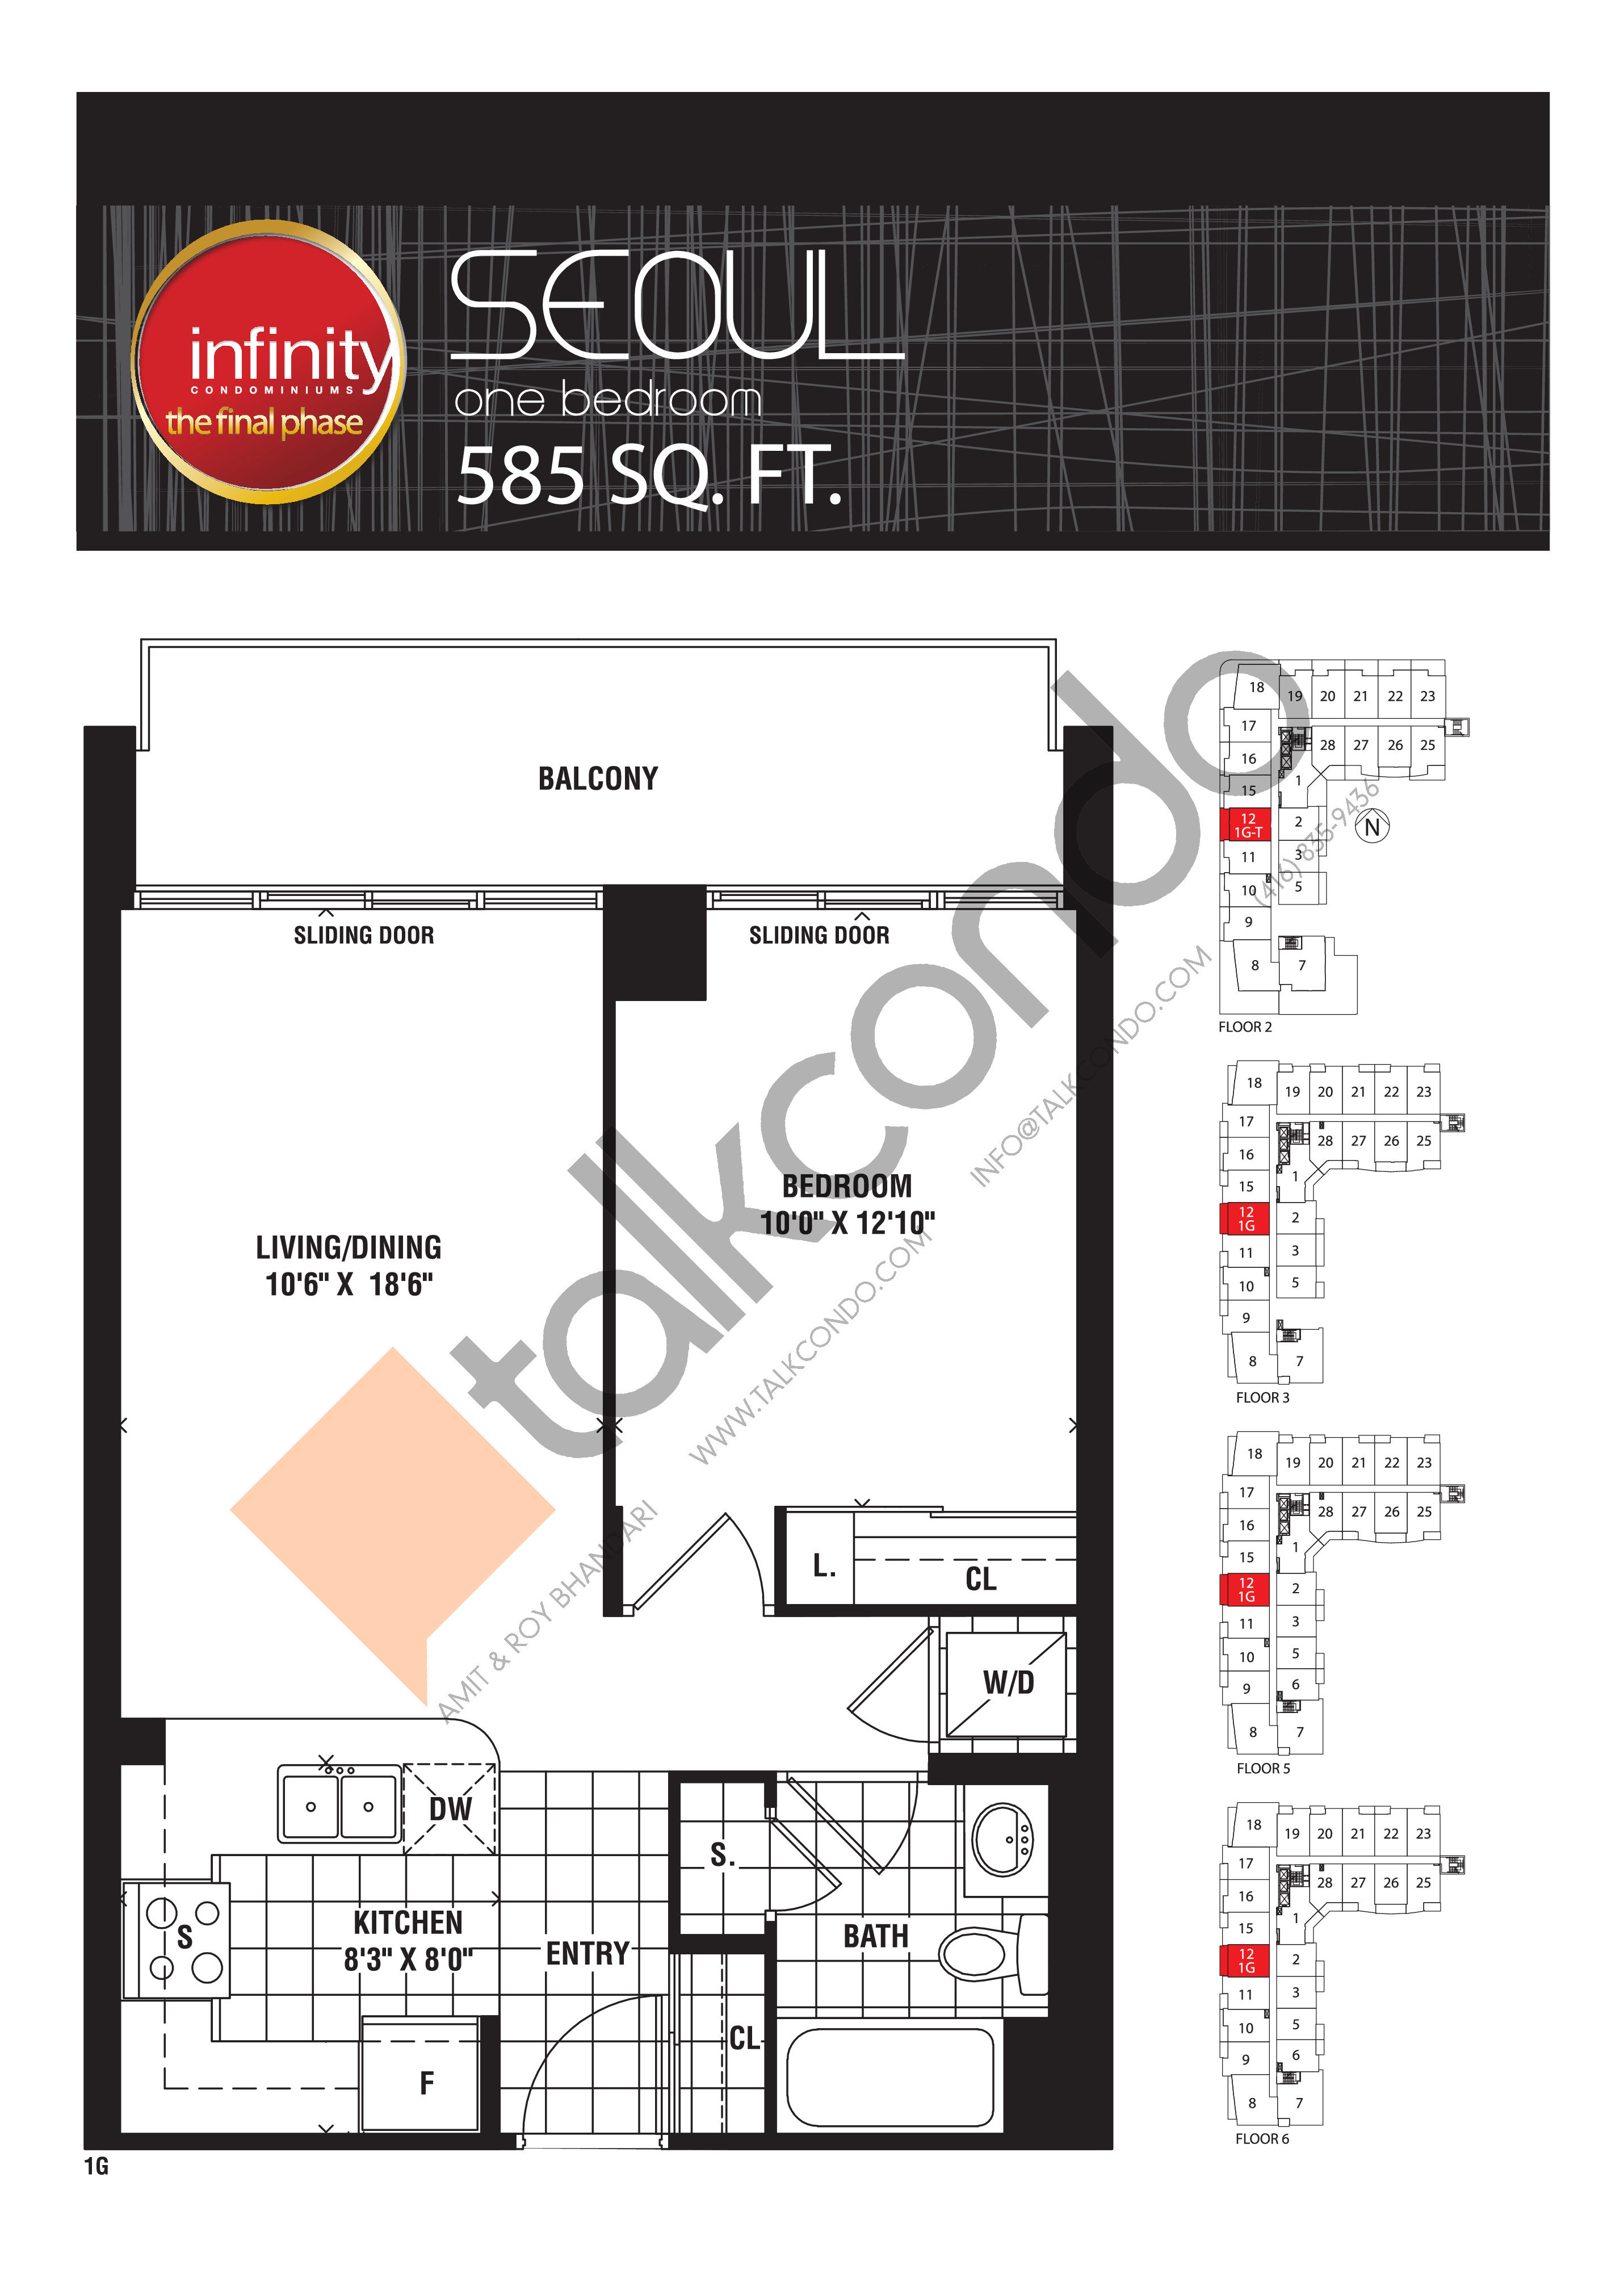 Seoul Floor Plan at Infinity: The Final Phase Condos - 585 sq.ft